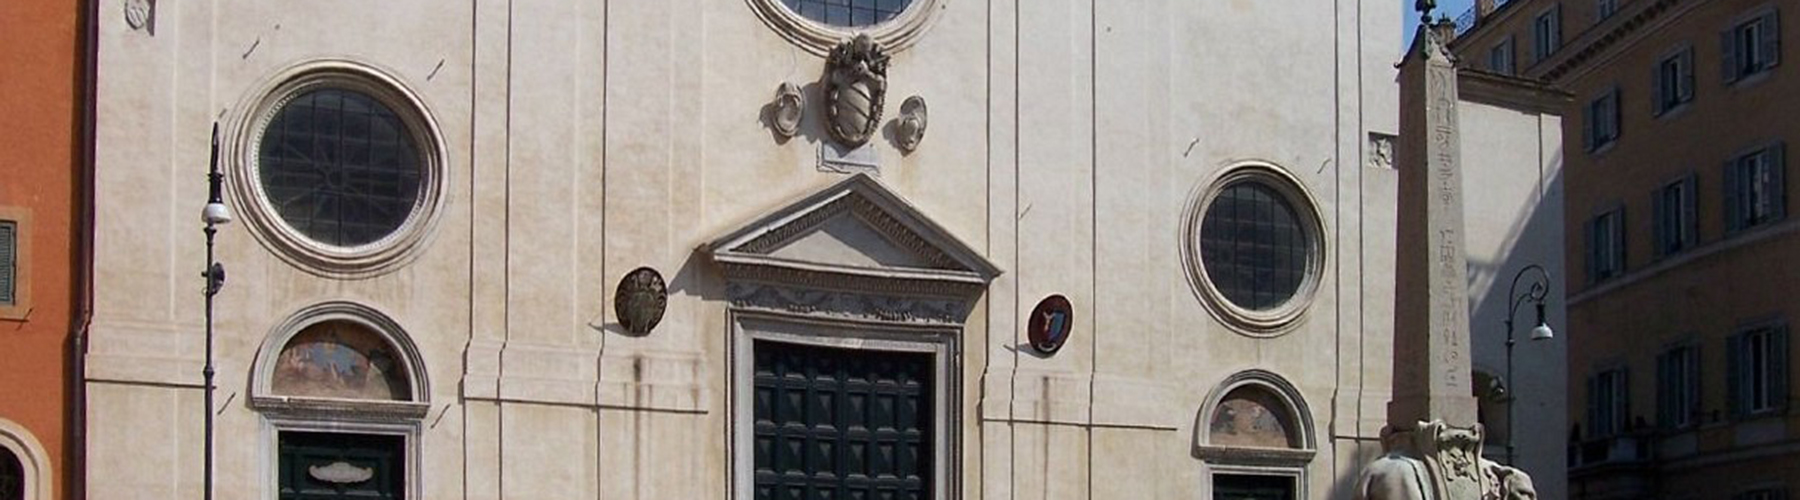 Rome – Camping close to Santa Maria sopra Minerva. Maps of Rome, Photos and Reviews for each camping in Rome.